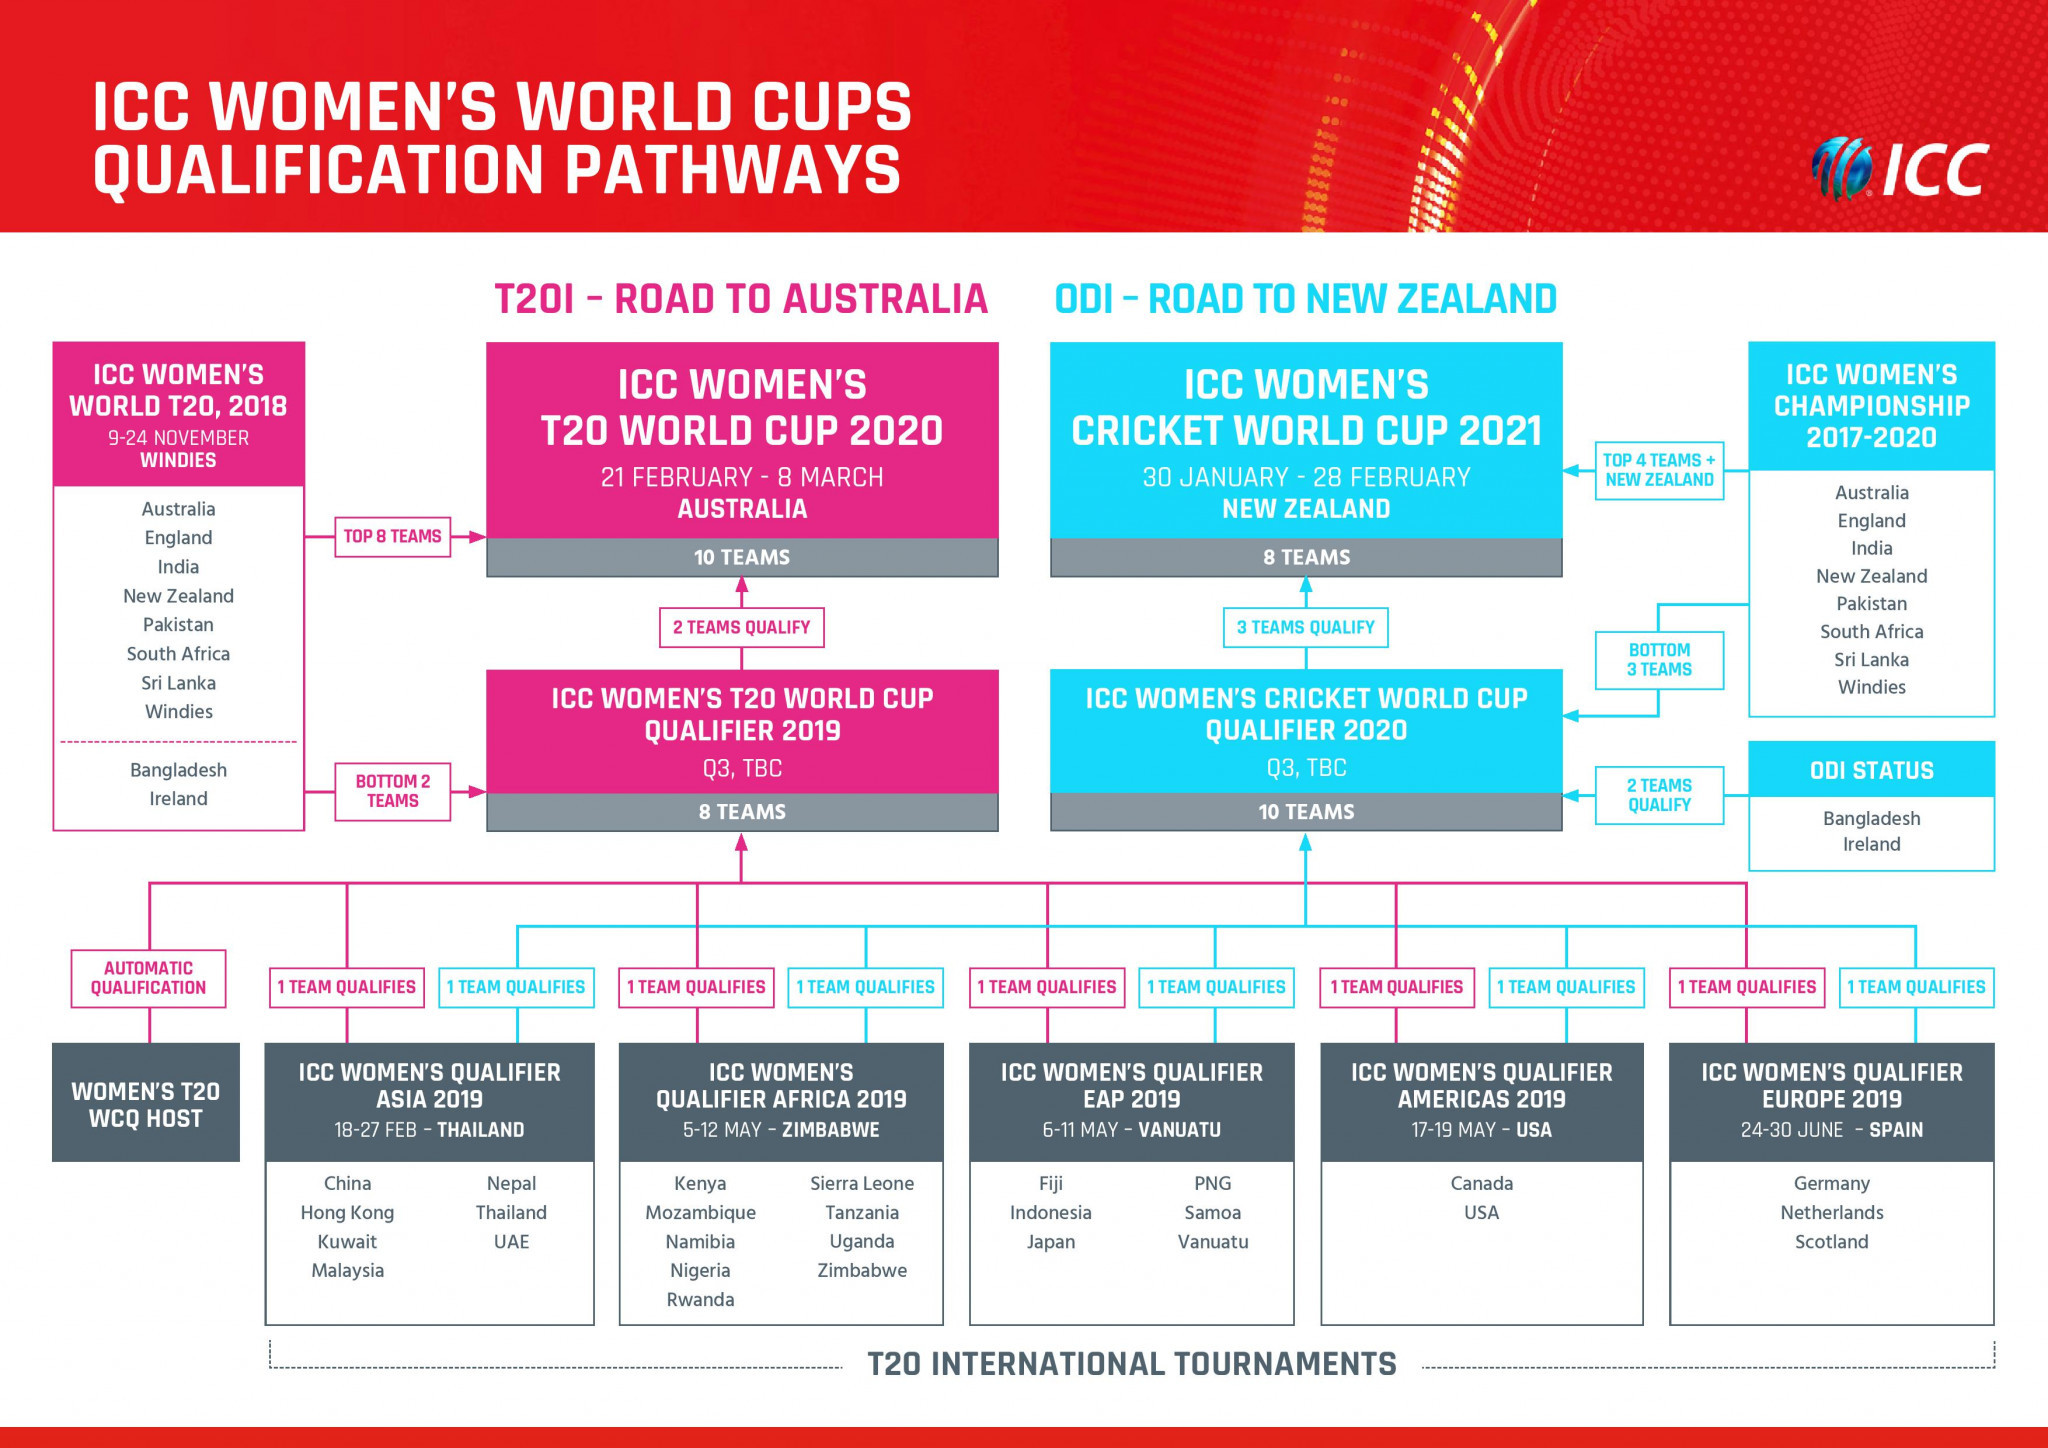 The ICC Women's Qualifier Asia will offer a place at the ICC Women's T20 World Cup Qualifier and the ICC Women's Cricket World Cup Qualifier ©ICC